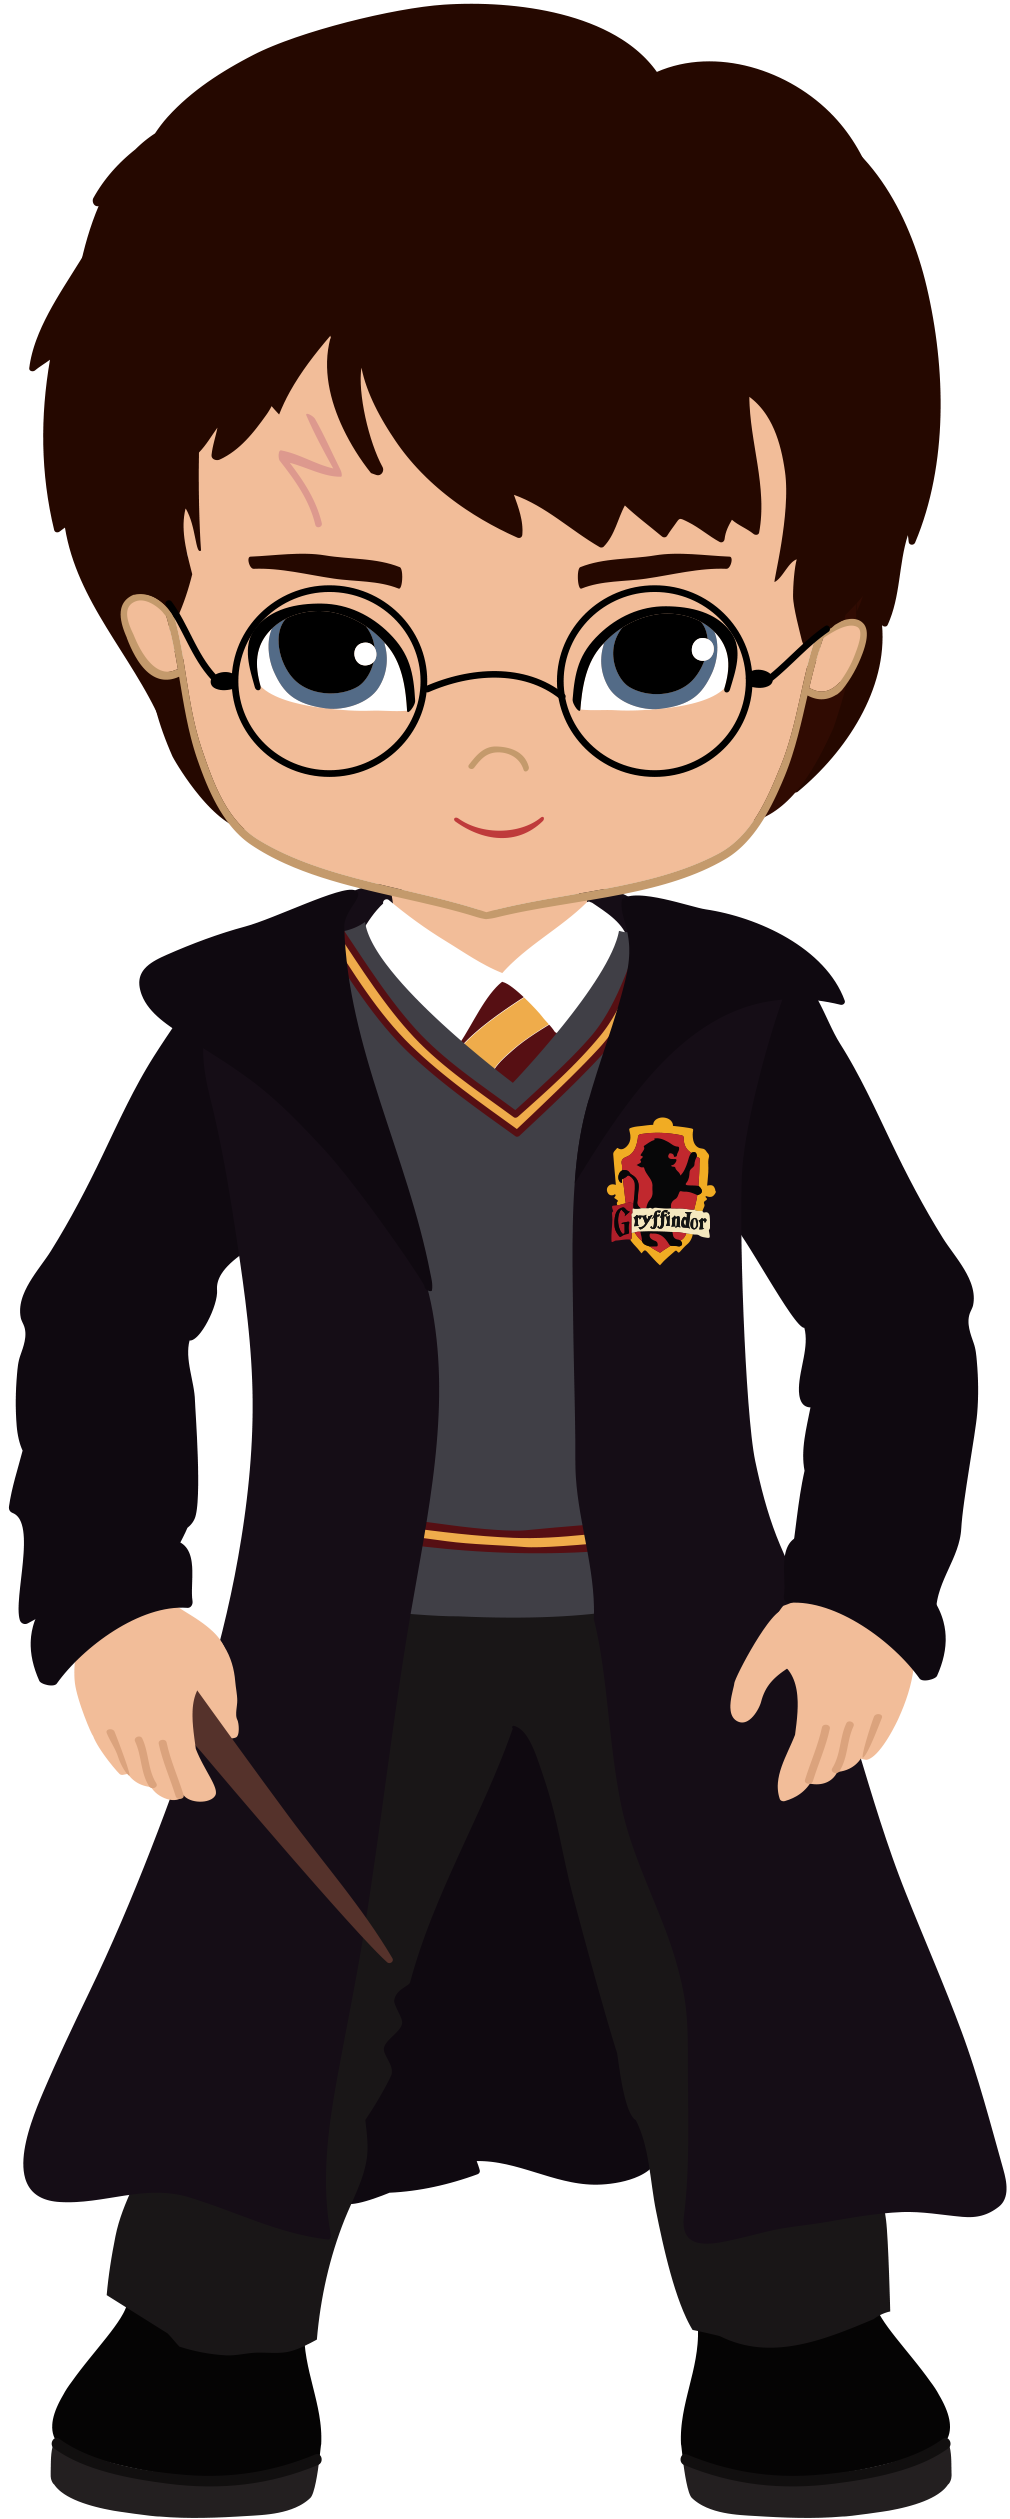 clip art freeuse stock Group pinteres. Moving clipart harry potter.